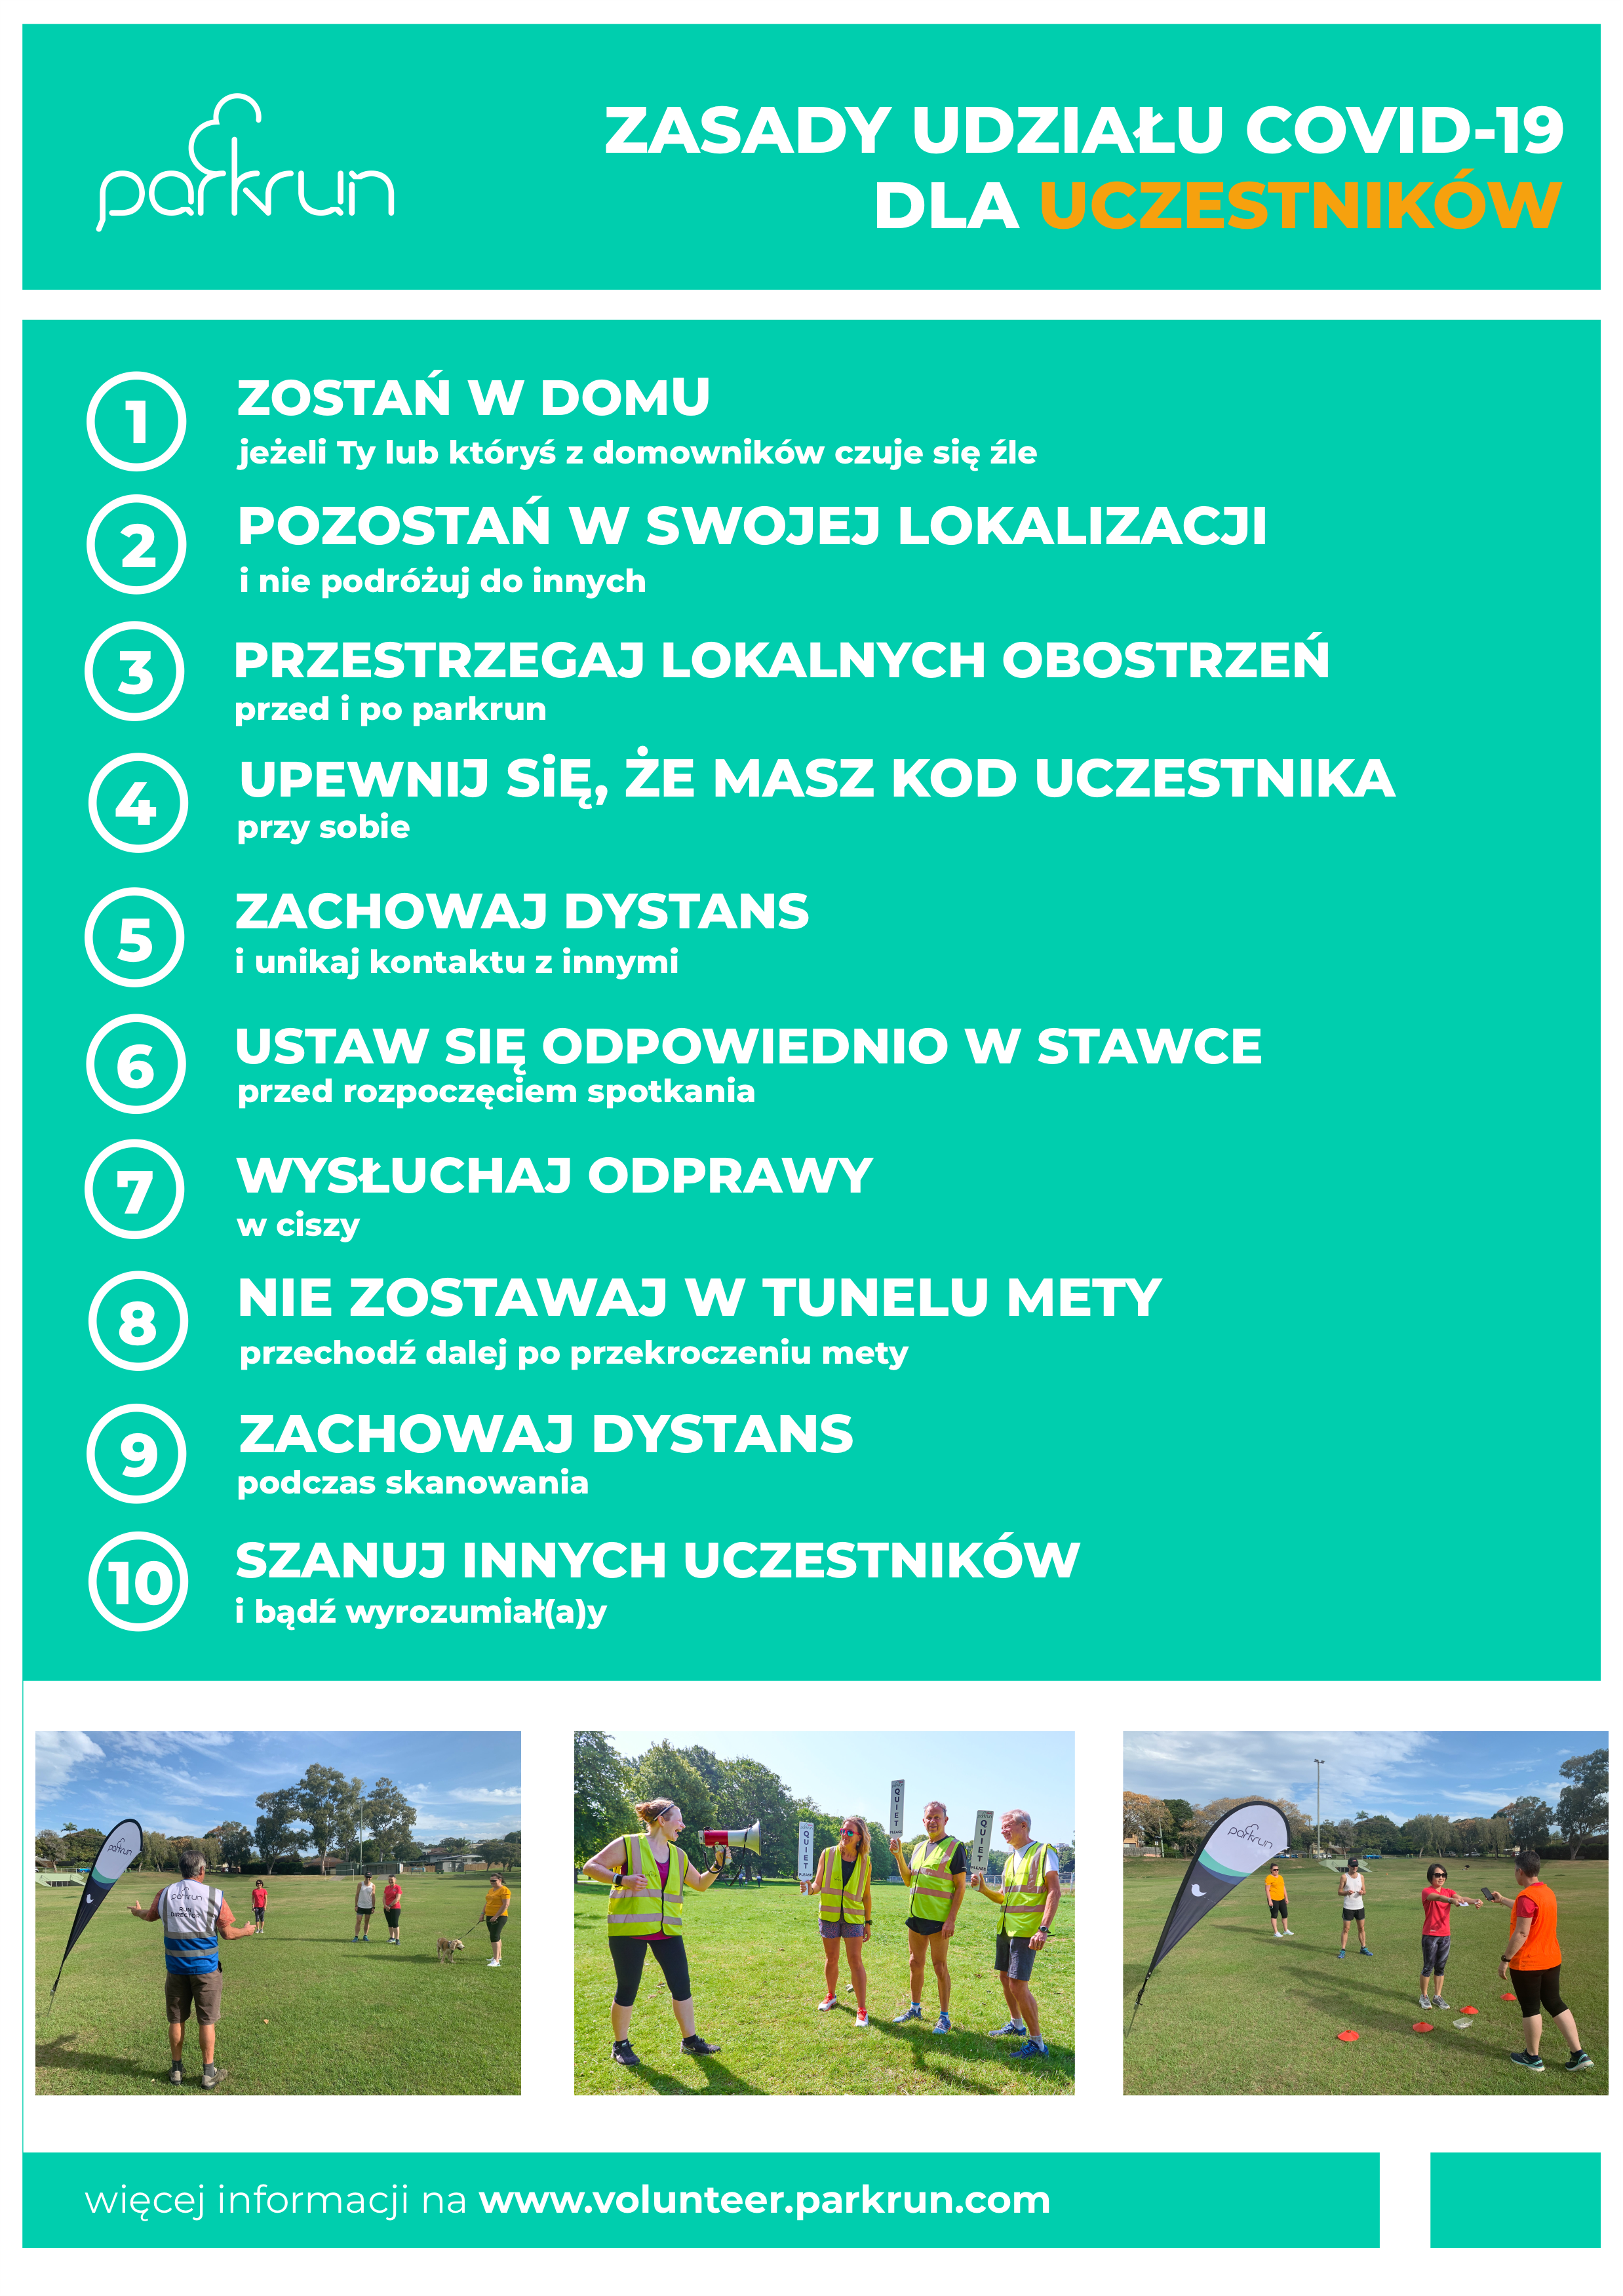 COVID19 parkrun code of conduct_PL uczestnicy